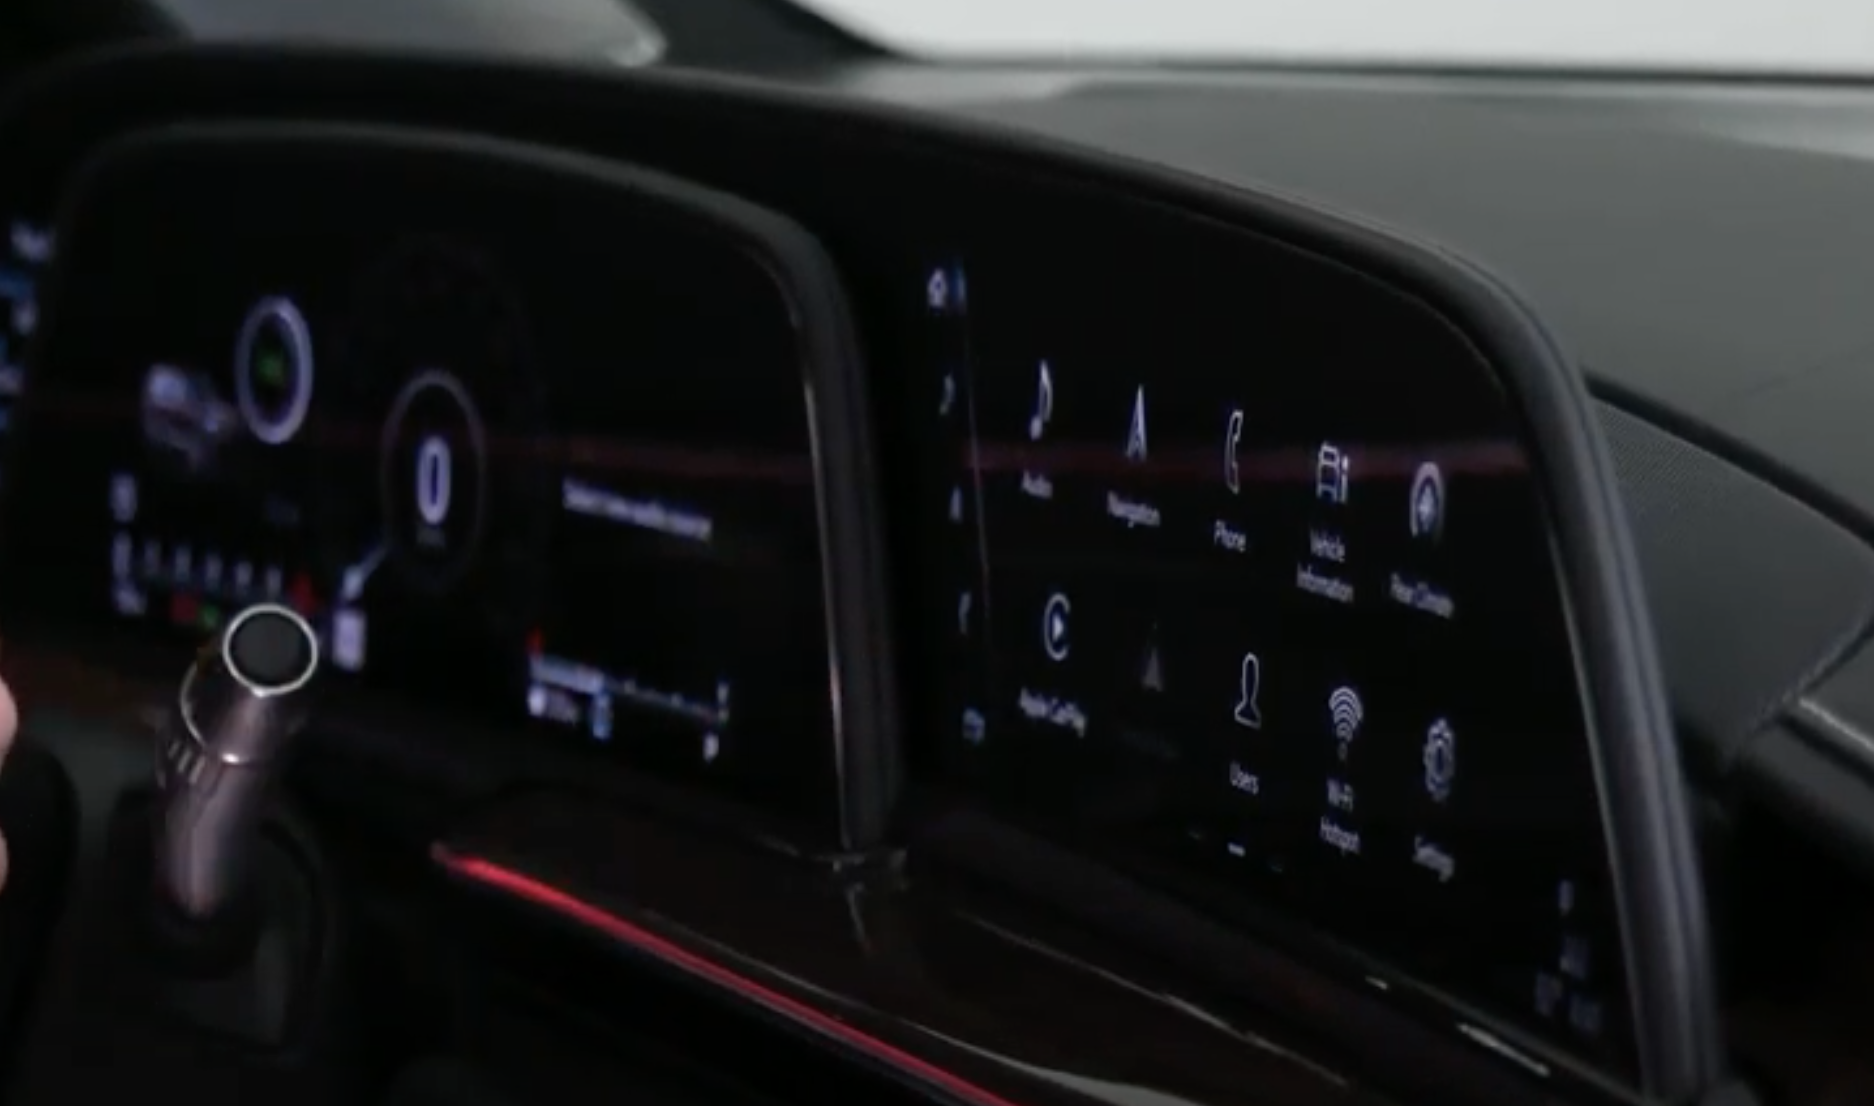 A photo of the touch surfaces of the infotainment system with the gauge cluster